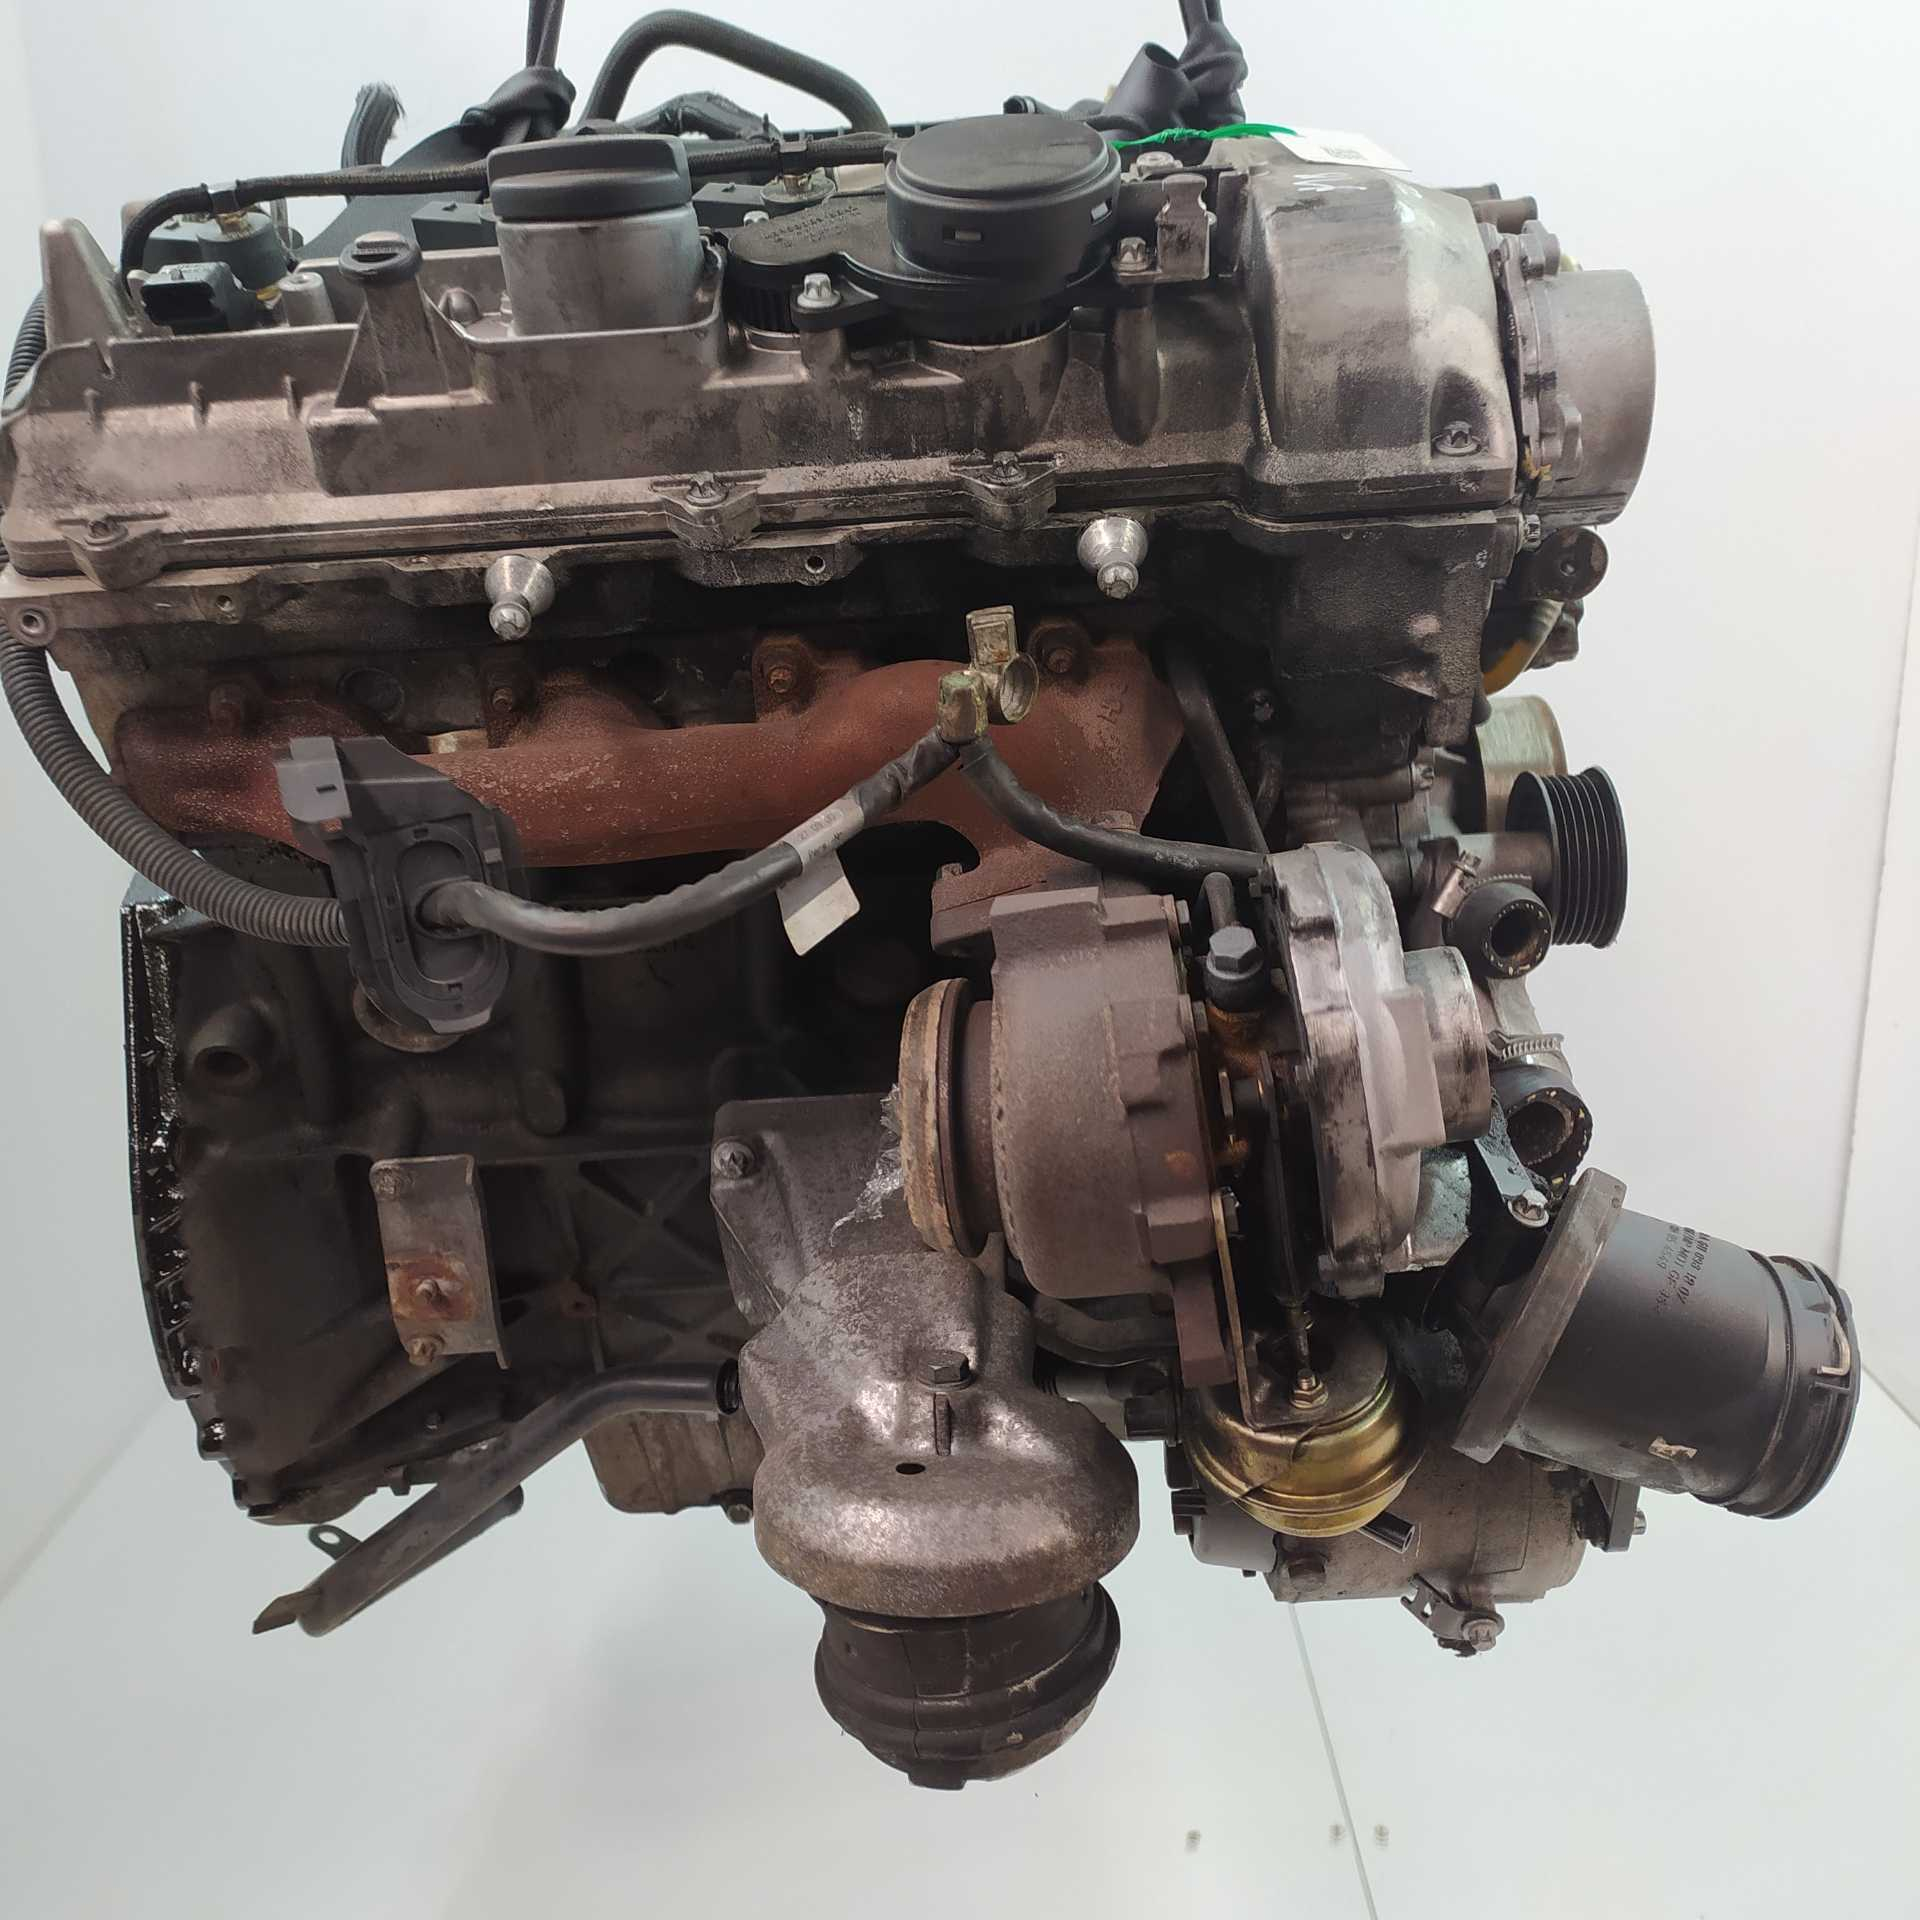 MOTOR COMPLETO MERCEDES-BENZ CLASE C C 220 CDI (203.006) (105 KW / 143 CV) (05.2000 - 02.2007)